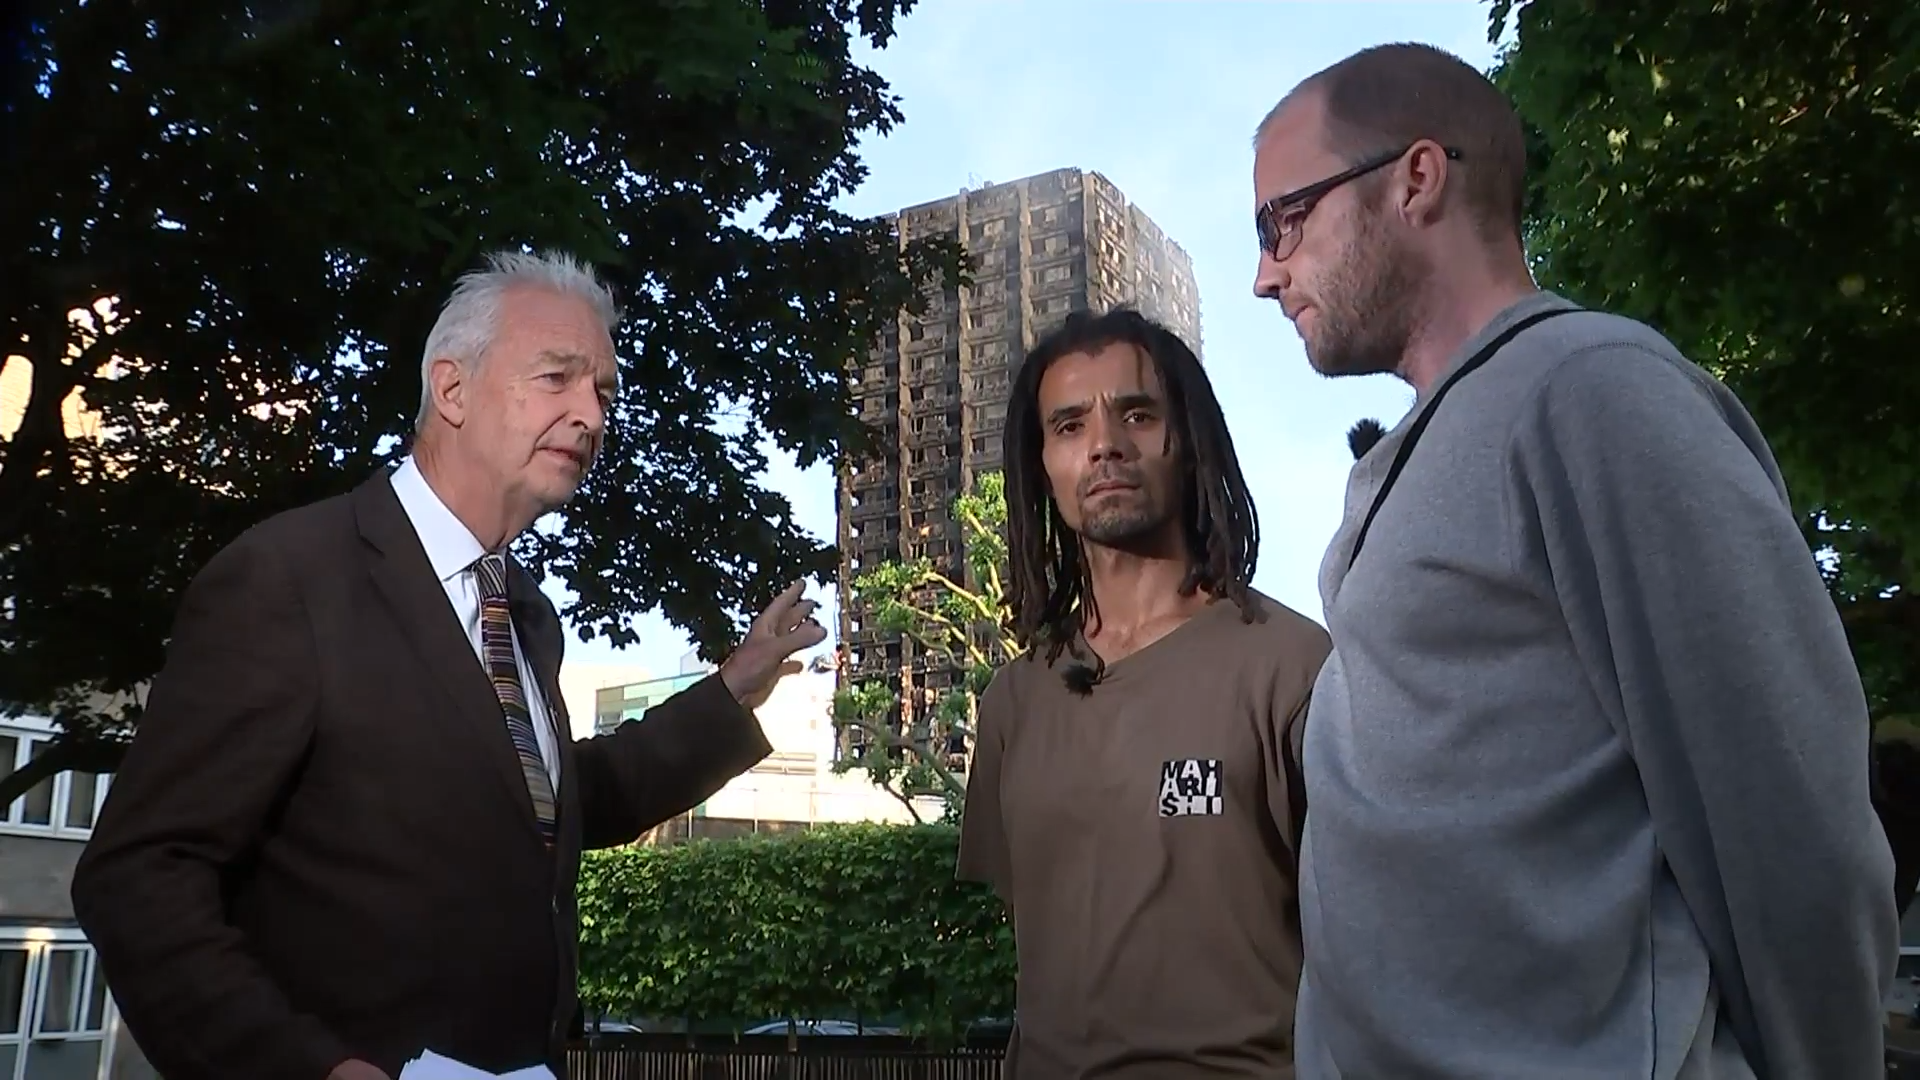 MOBO award-winning musician and writer Akala and local resident Joe Delaney